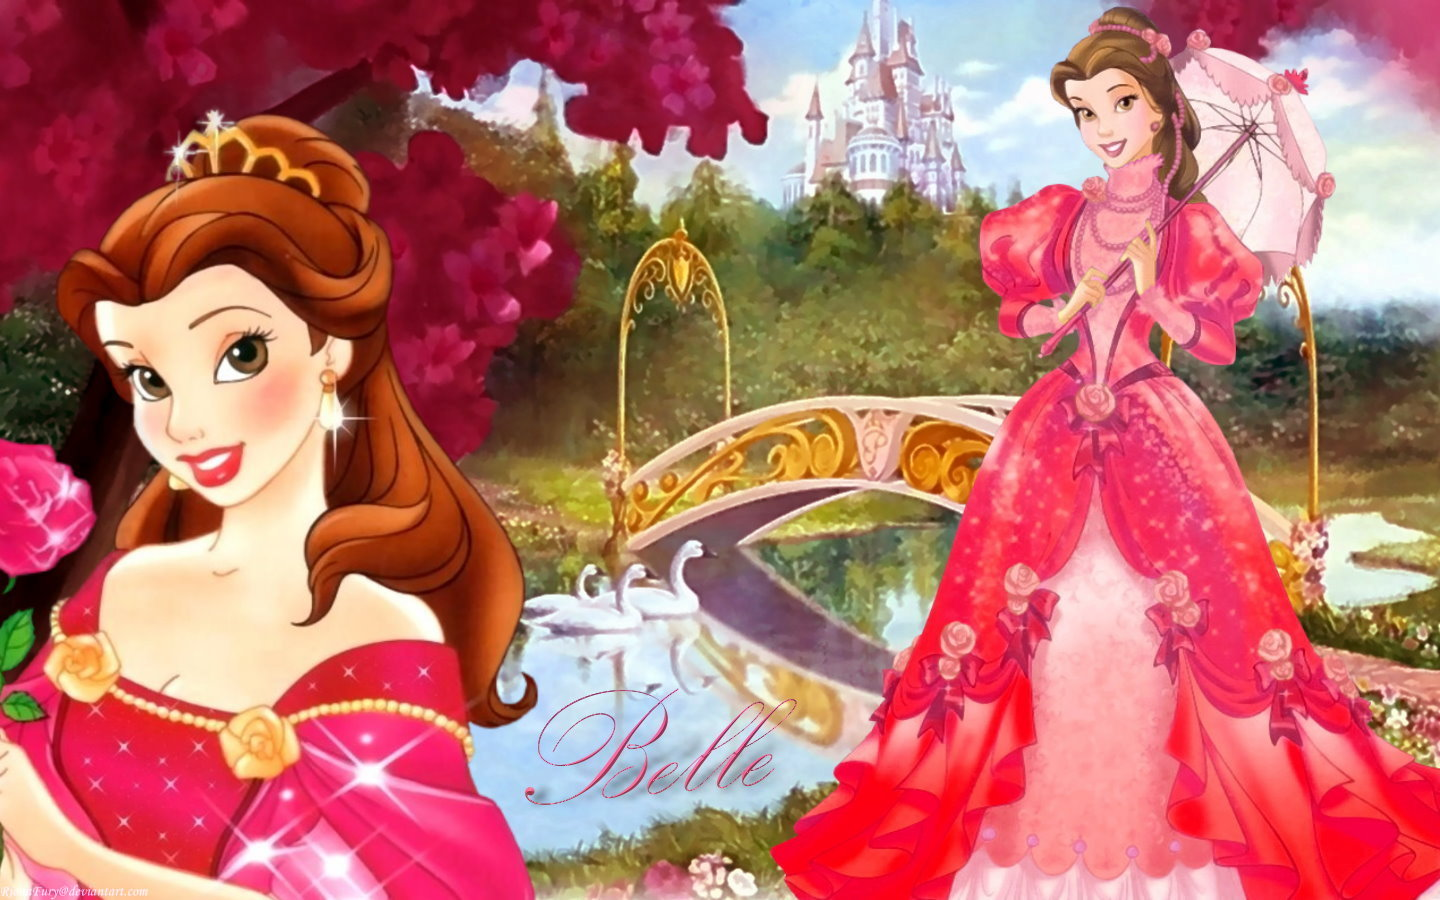 Elinafairy Images Princess Belle HD Wallpaper And Background Photos